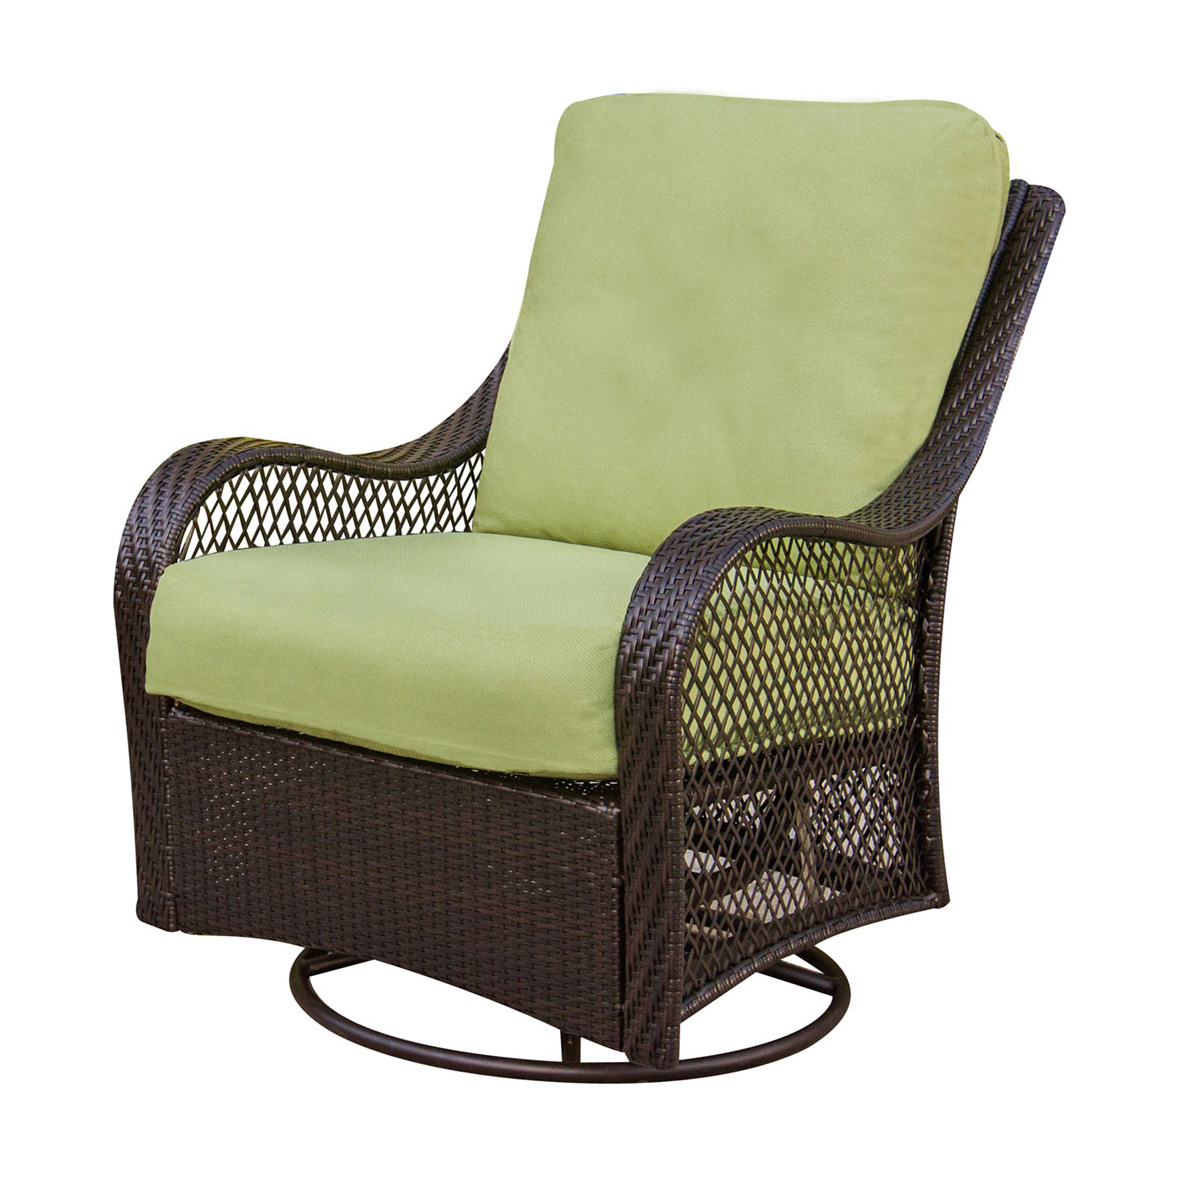 Hanover Orleans 3 Piece Wicker Chair Set With 2 Swivel